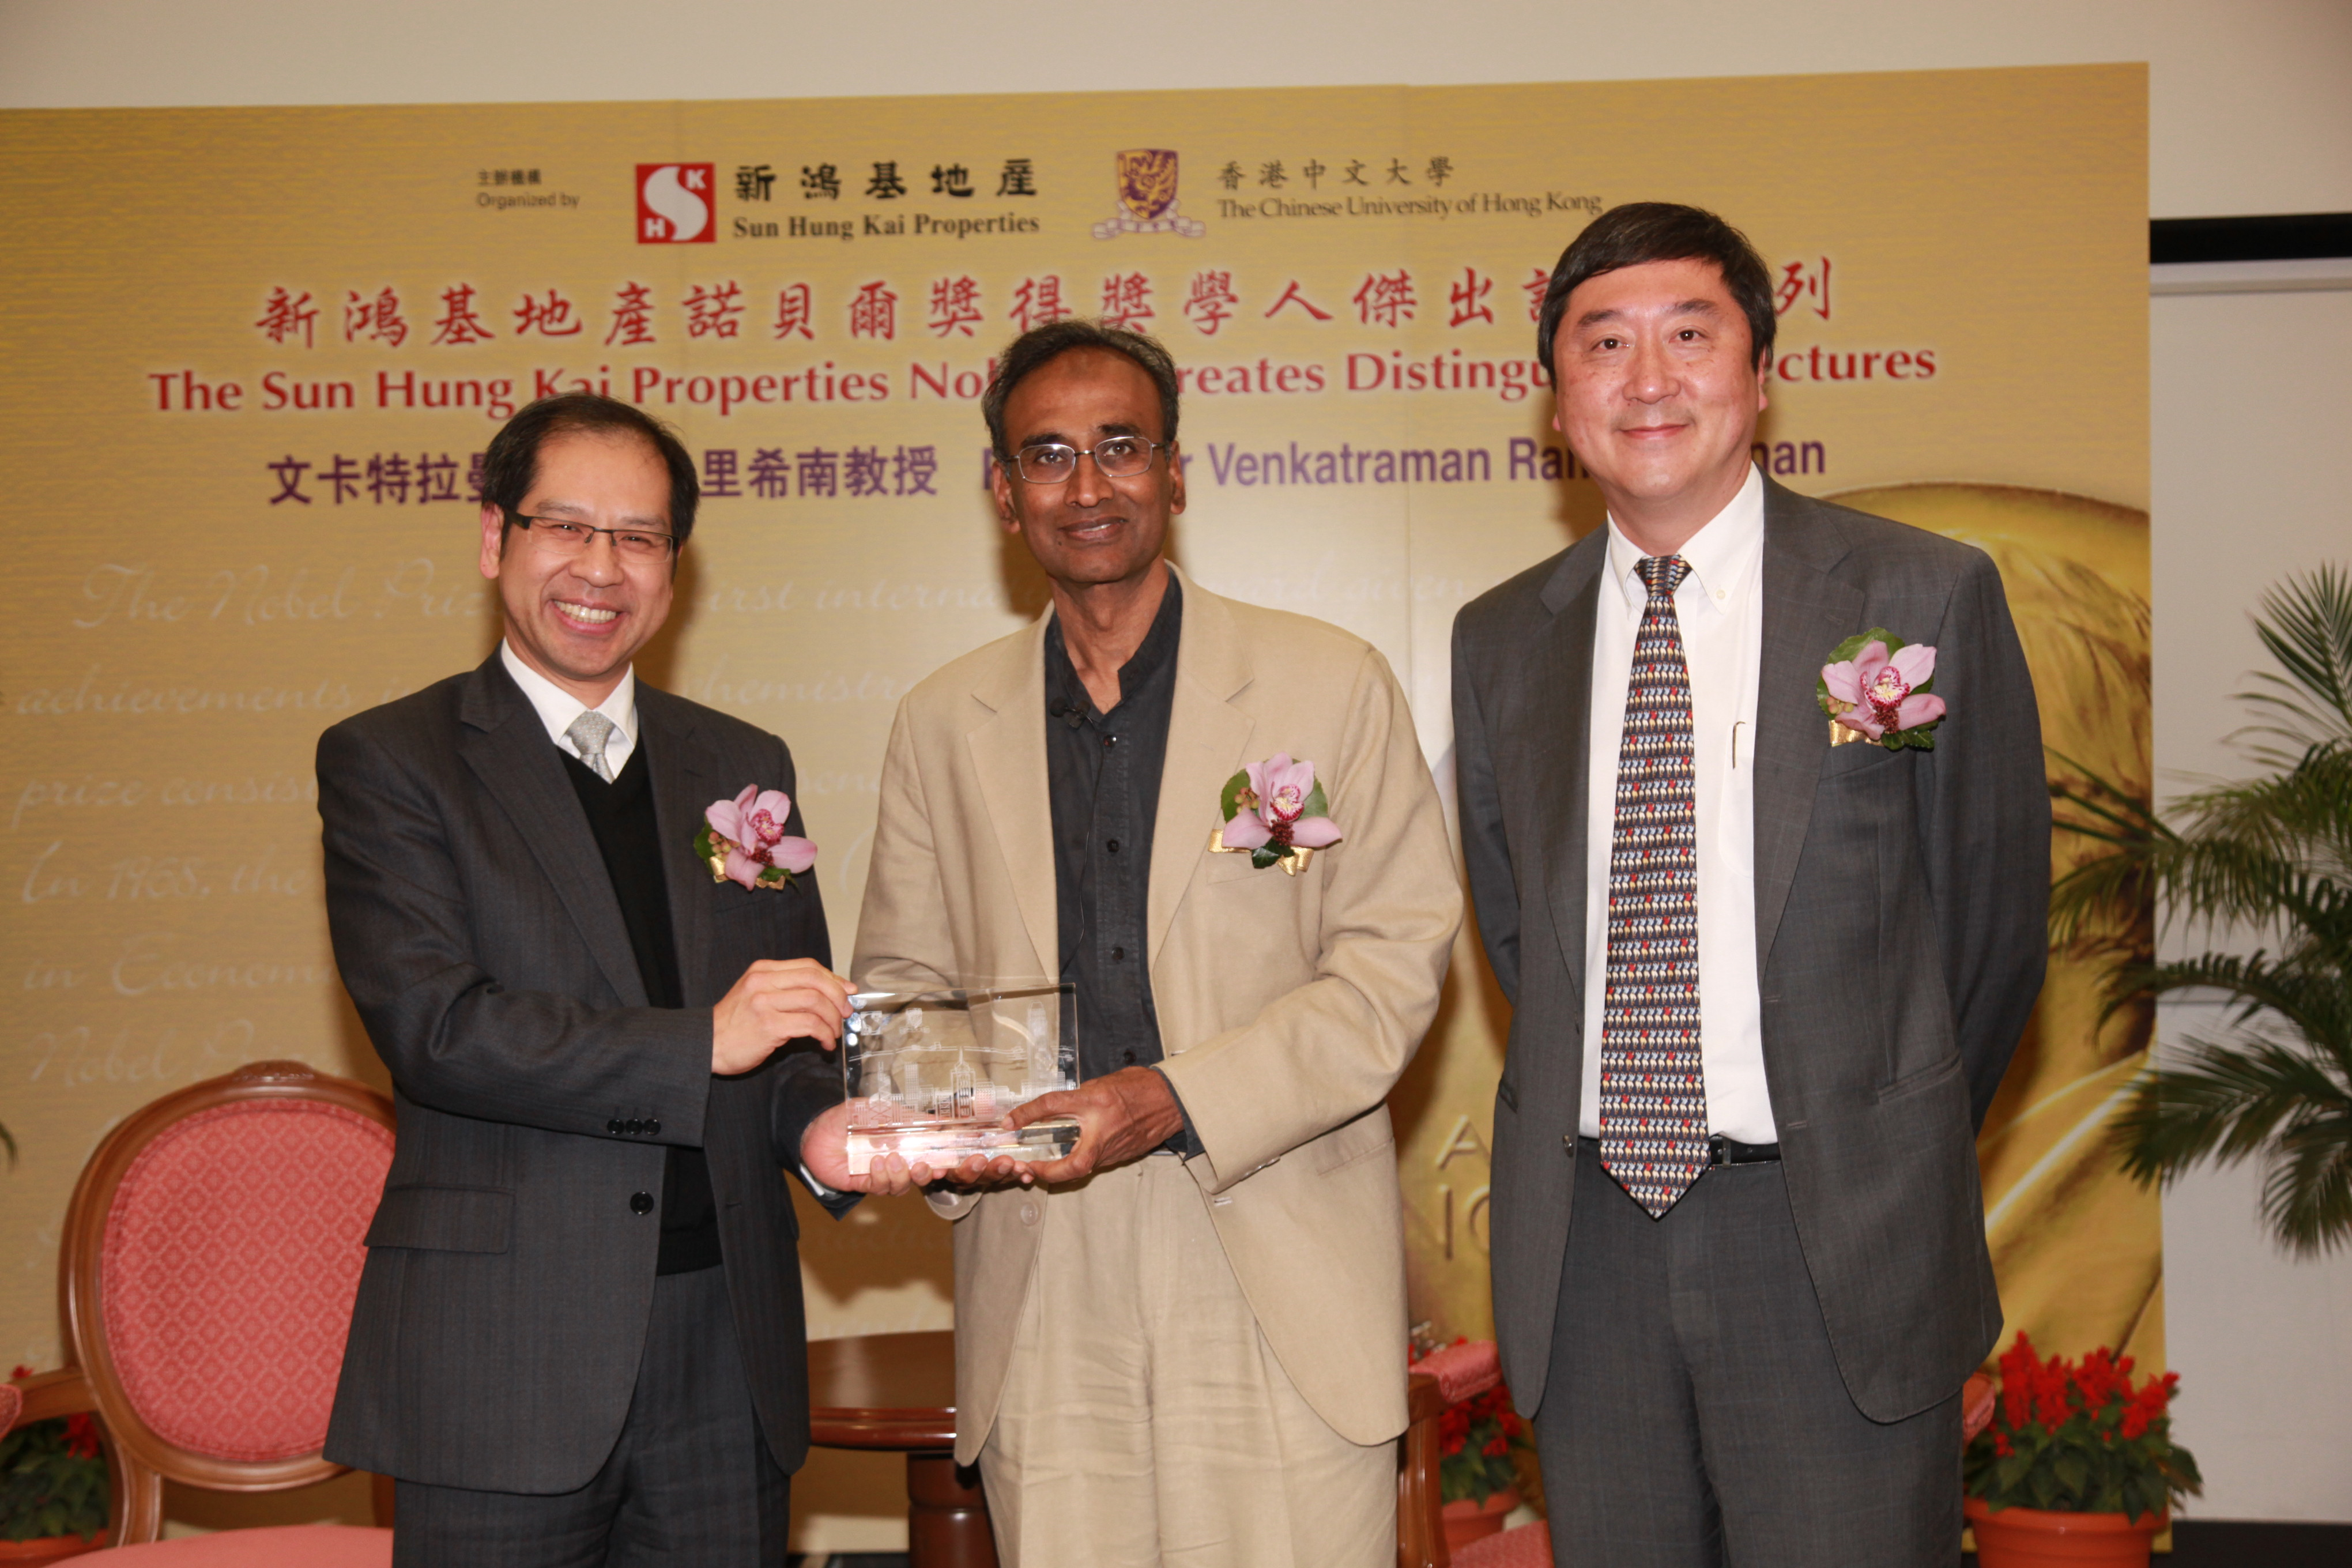 Mr. Patrick Chan, Executive Director and Chief Financial Officer, SHKP (left) and Prof. Joseph Sung, Vice-Chancellor, CUHK (right) present a souvenir to Professor Ramakrishnan